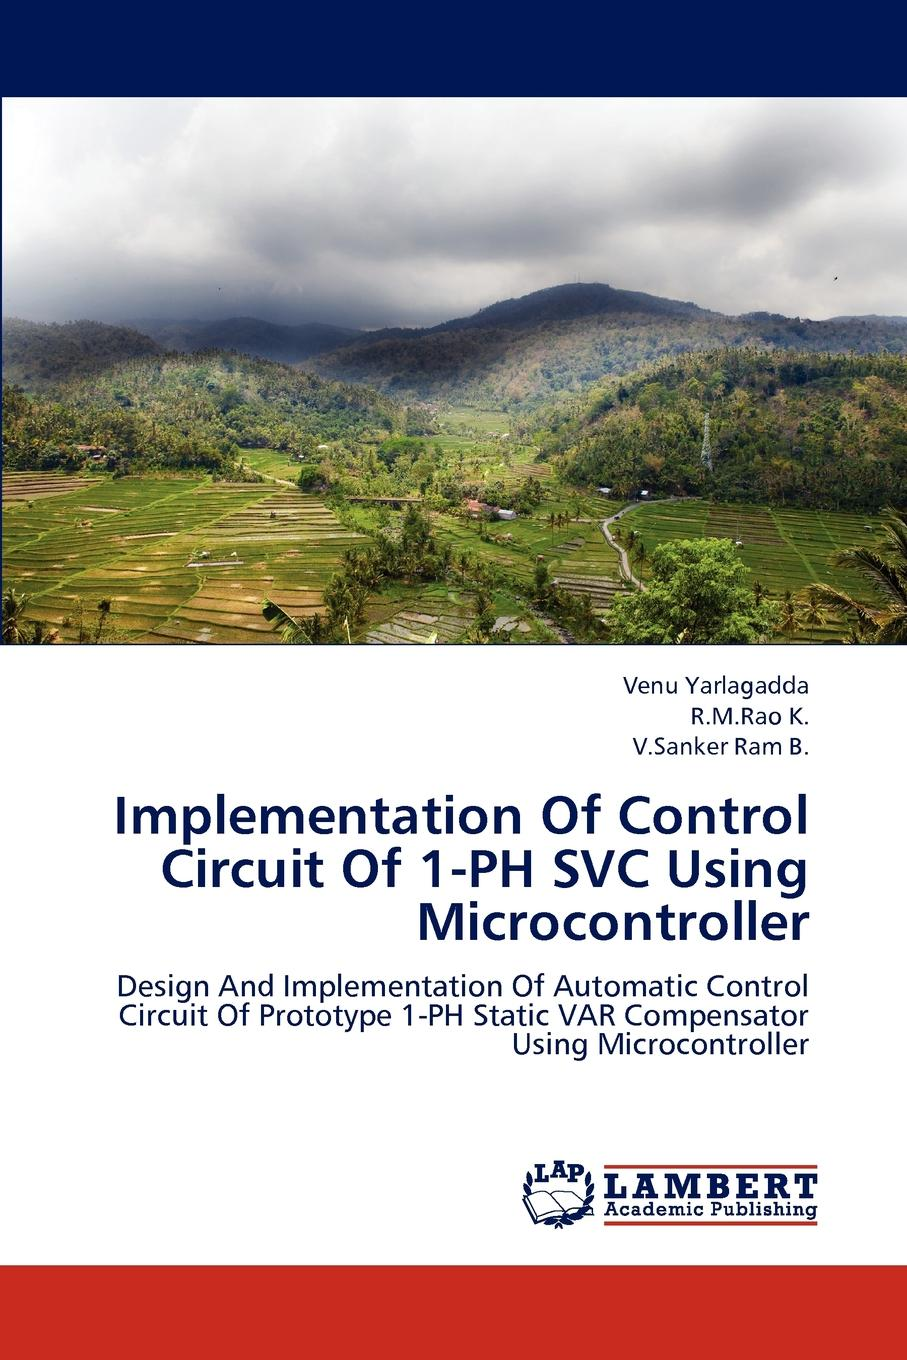 Venu Yarlagadda, R.M.Rao K., V.Sanker Ram B. Implementation Of Control Circuit Of 1-PH SVC Using Microcontroller microcontroller 24 93 series eeprom programmer sp200se sp200s with isp interface red